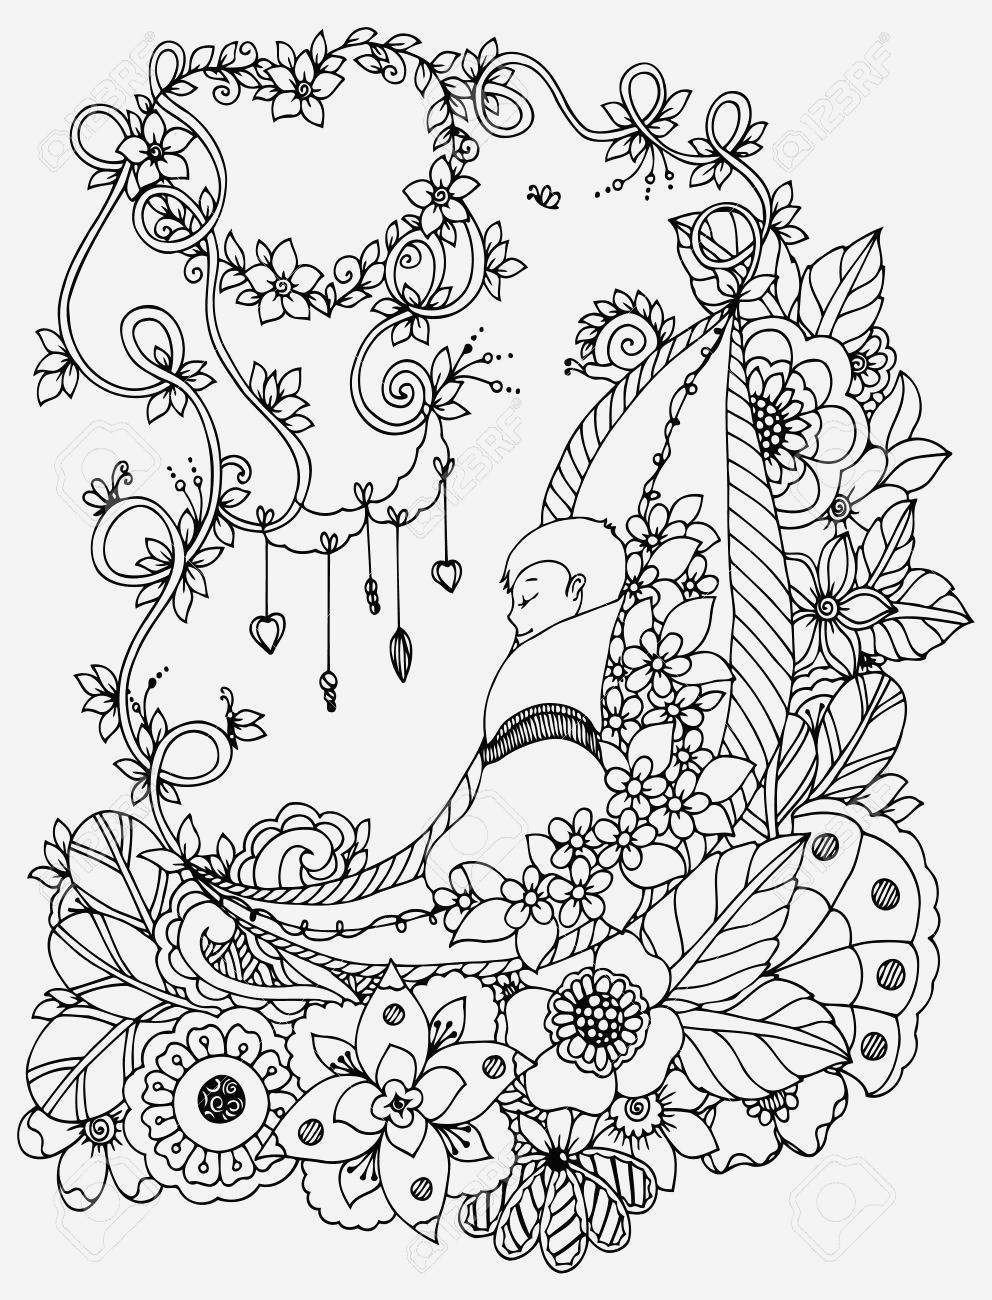 Coloriage Adulte Anti Stress Best Of Vector Illustration Zentangl the Baby is Sleeping In the Flowers